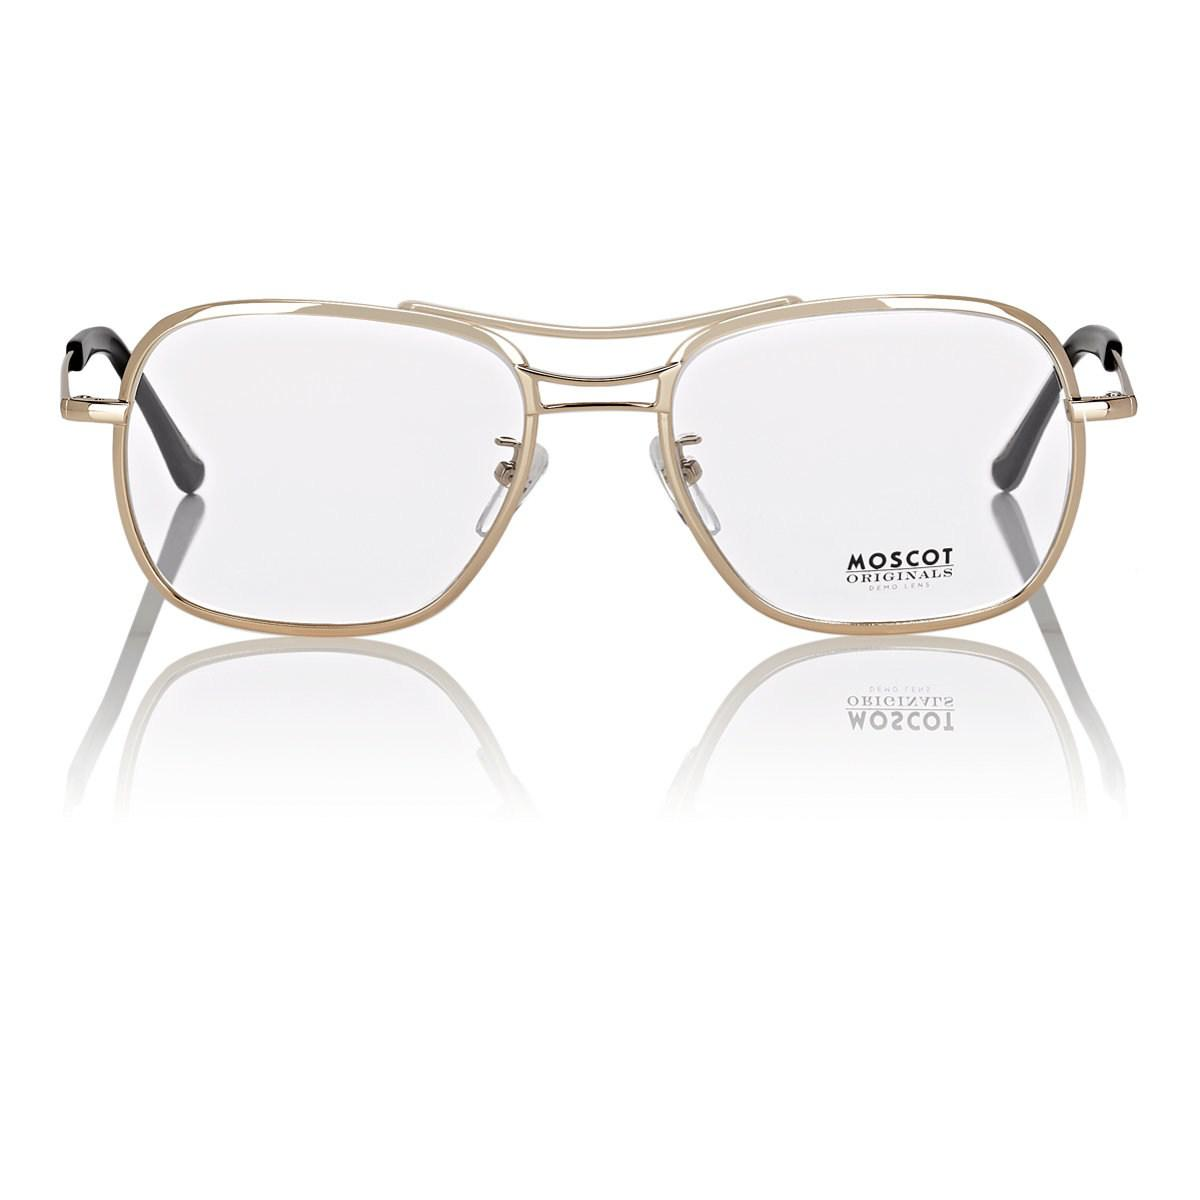 5e0f168ac1 Lyst - Moscot Heldish Eyeglasses in Metallic for Men